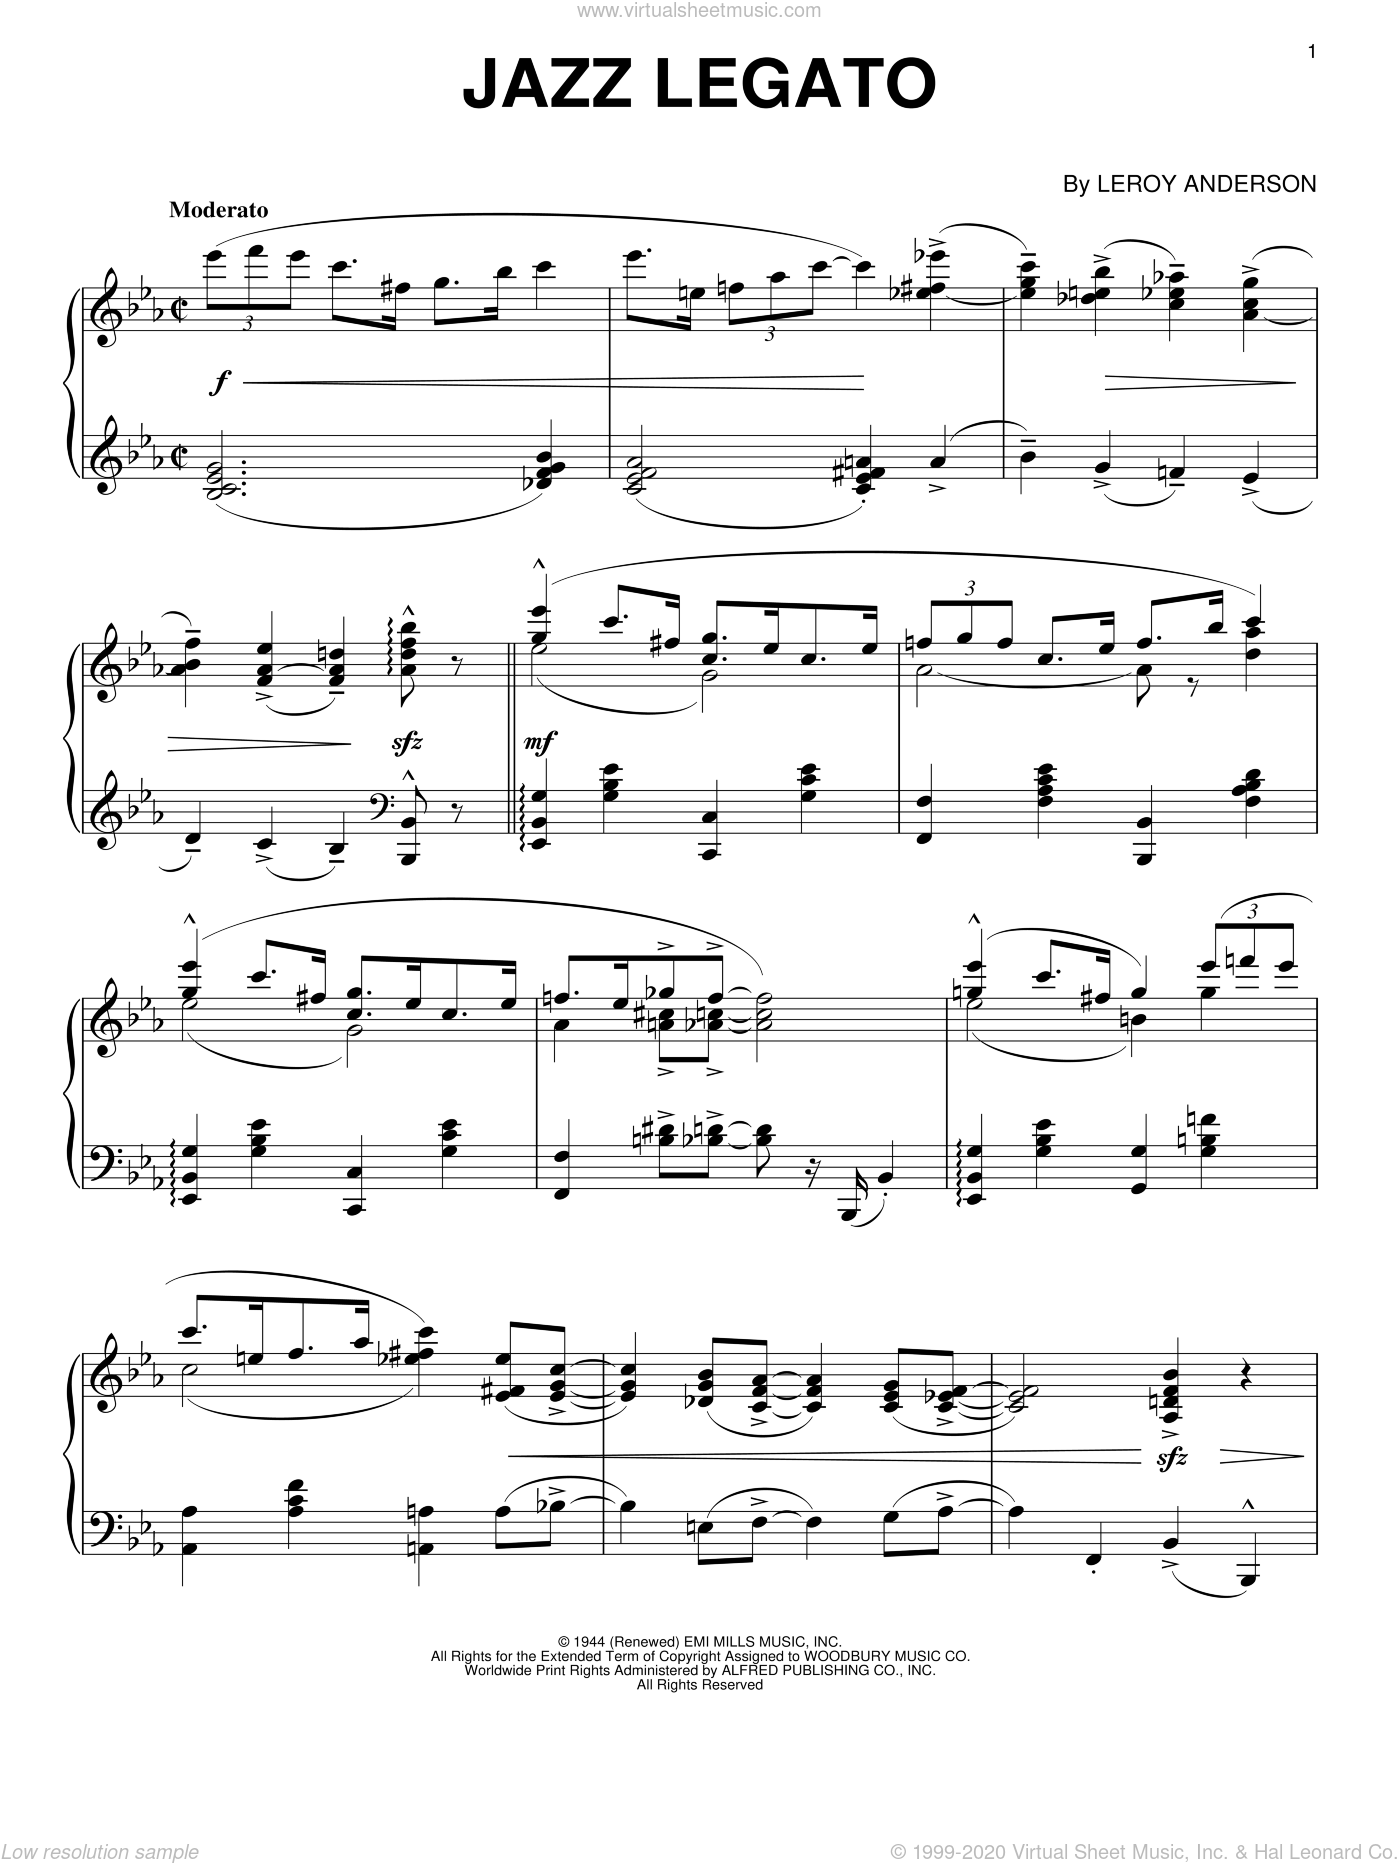 Jazz Legato sheet music for piano solo by LeRoy Anderson